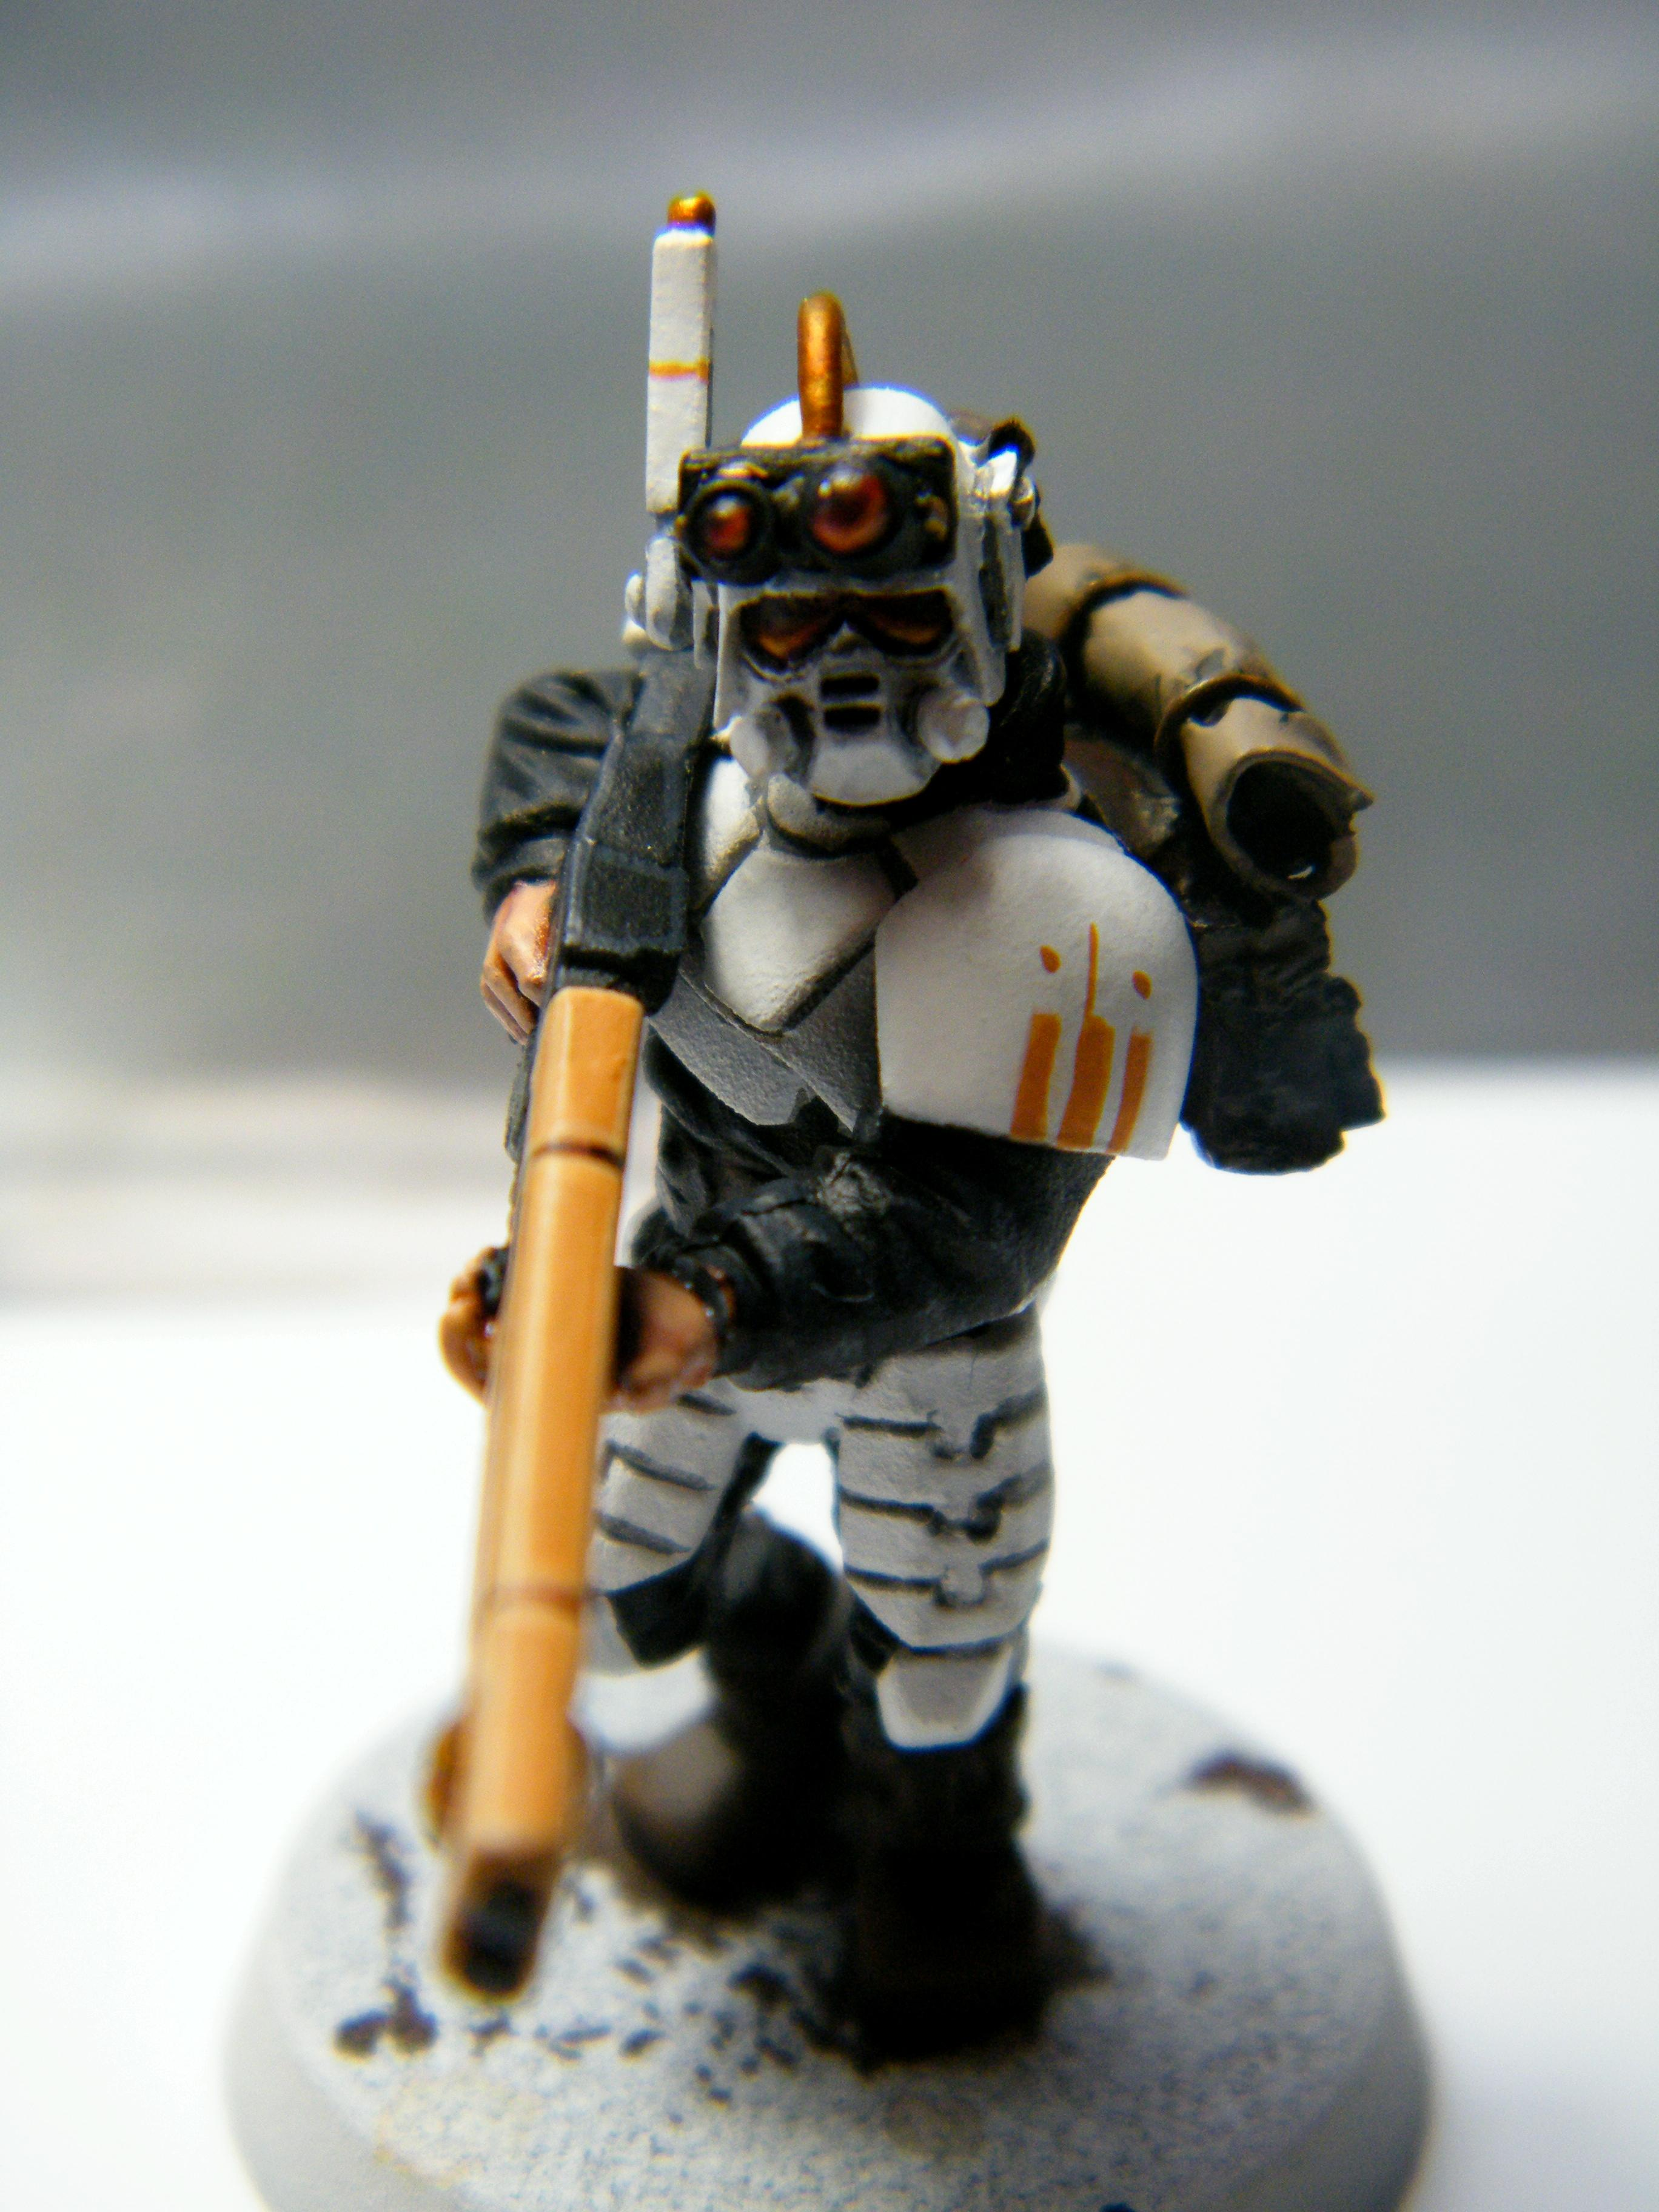 Army, Conversion, Empire, Guevesa, Imeprial Guard, Kitbash, Tau, Warhammer 40,000